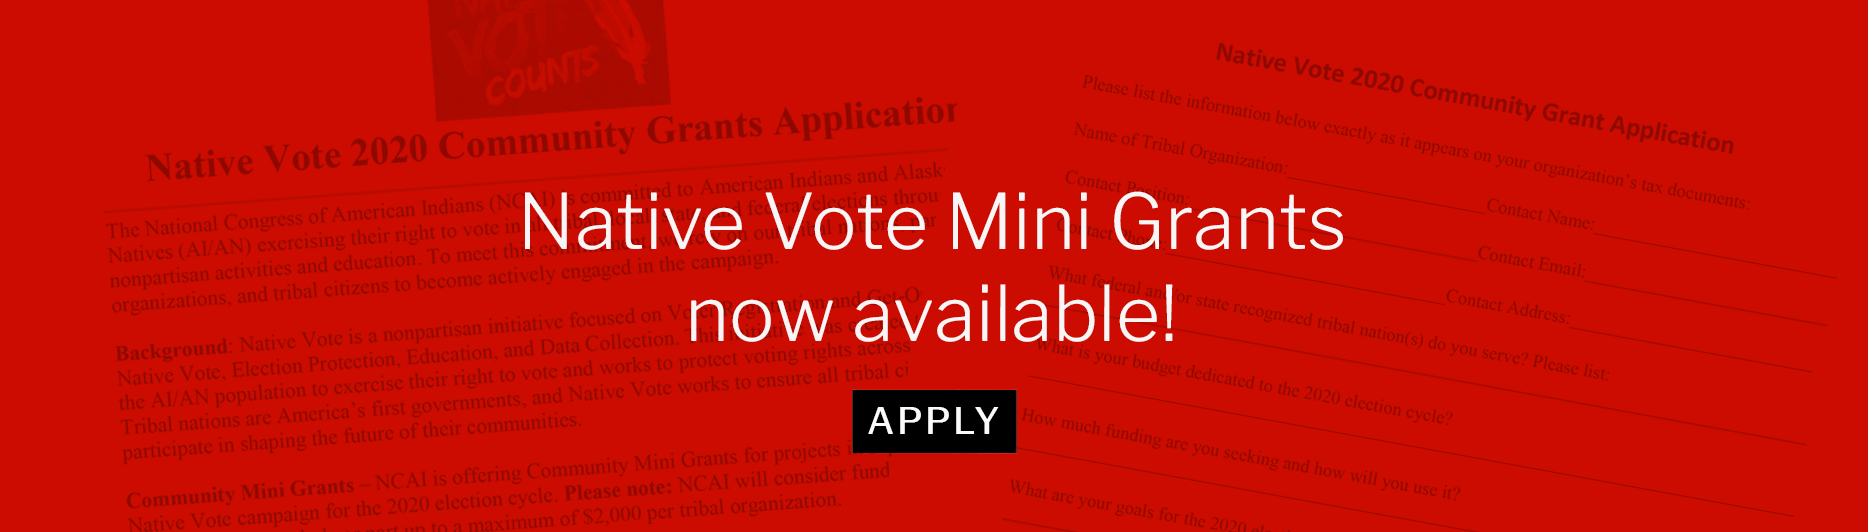 Native Vote Mini Grants now available